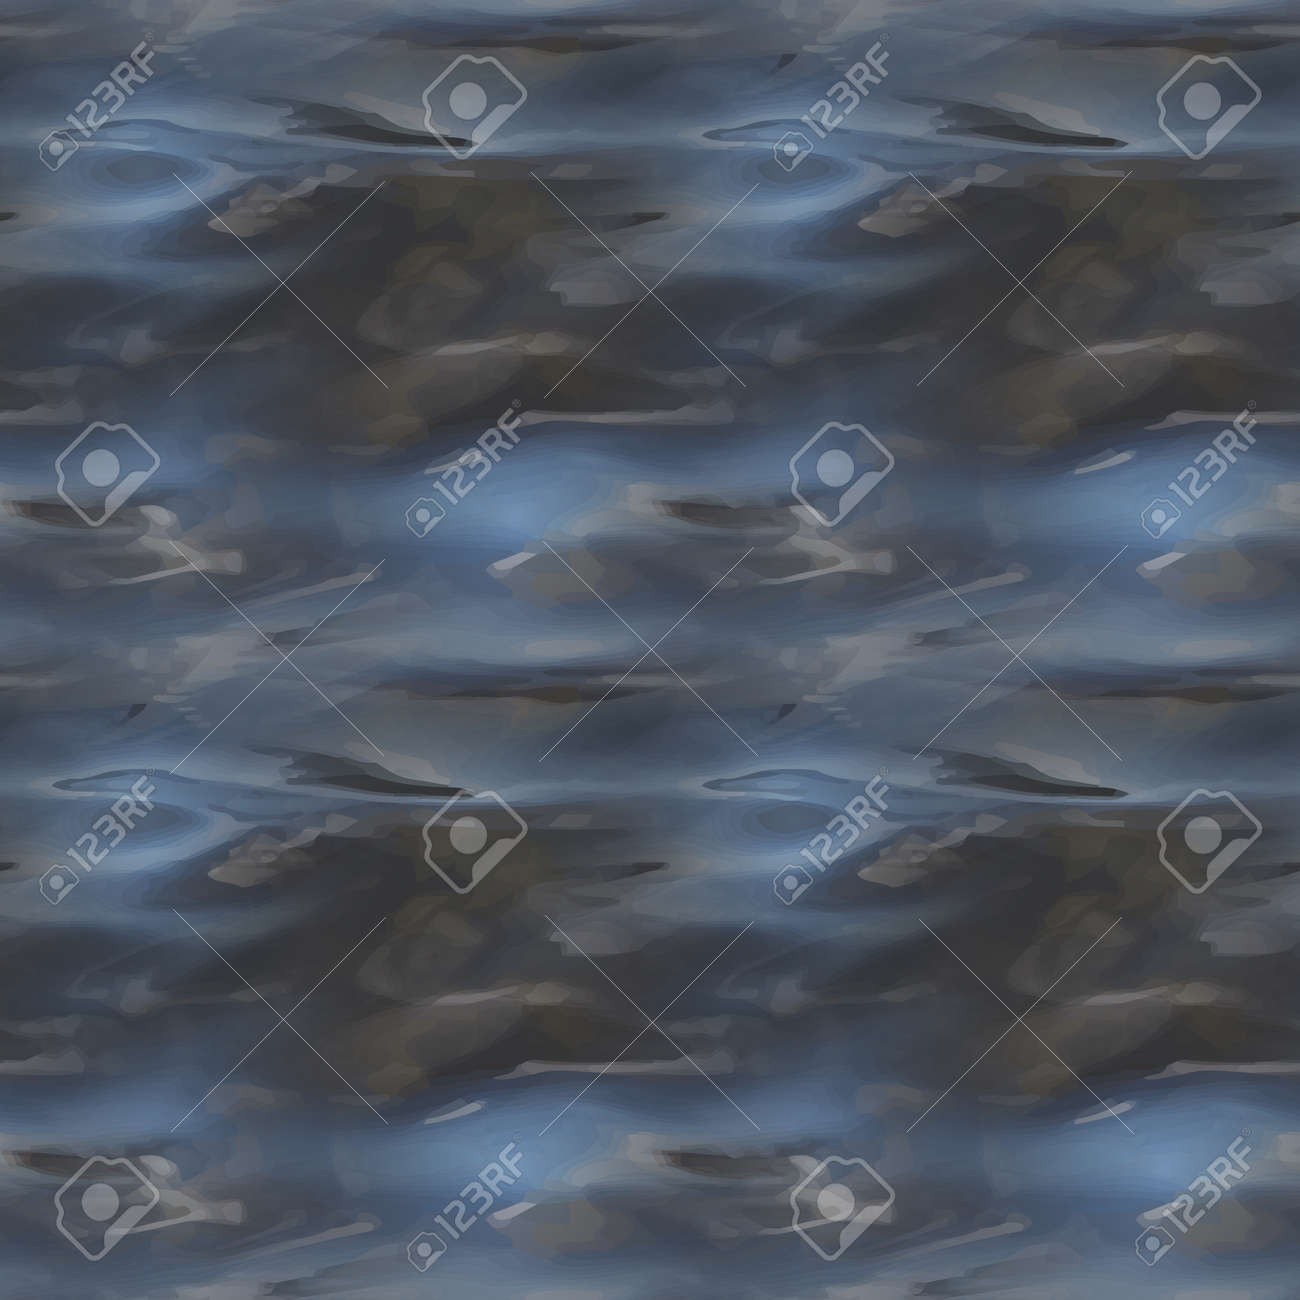 Seamless river water texture Ocean Floor Vector Vector Realistic Water Texture Seamless Pattern To Use As Background For Websites Or Other Media Seamless Tile To Make Endless Water Surface 123rfcom Vector Realistic Water Texture Seamless Pattern To Use As